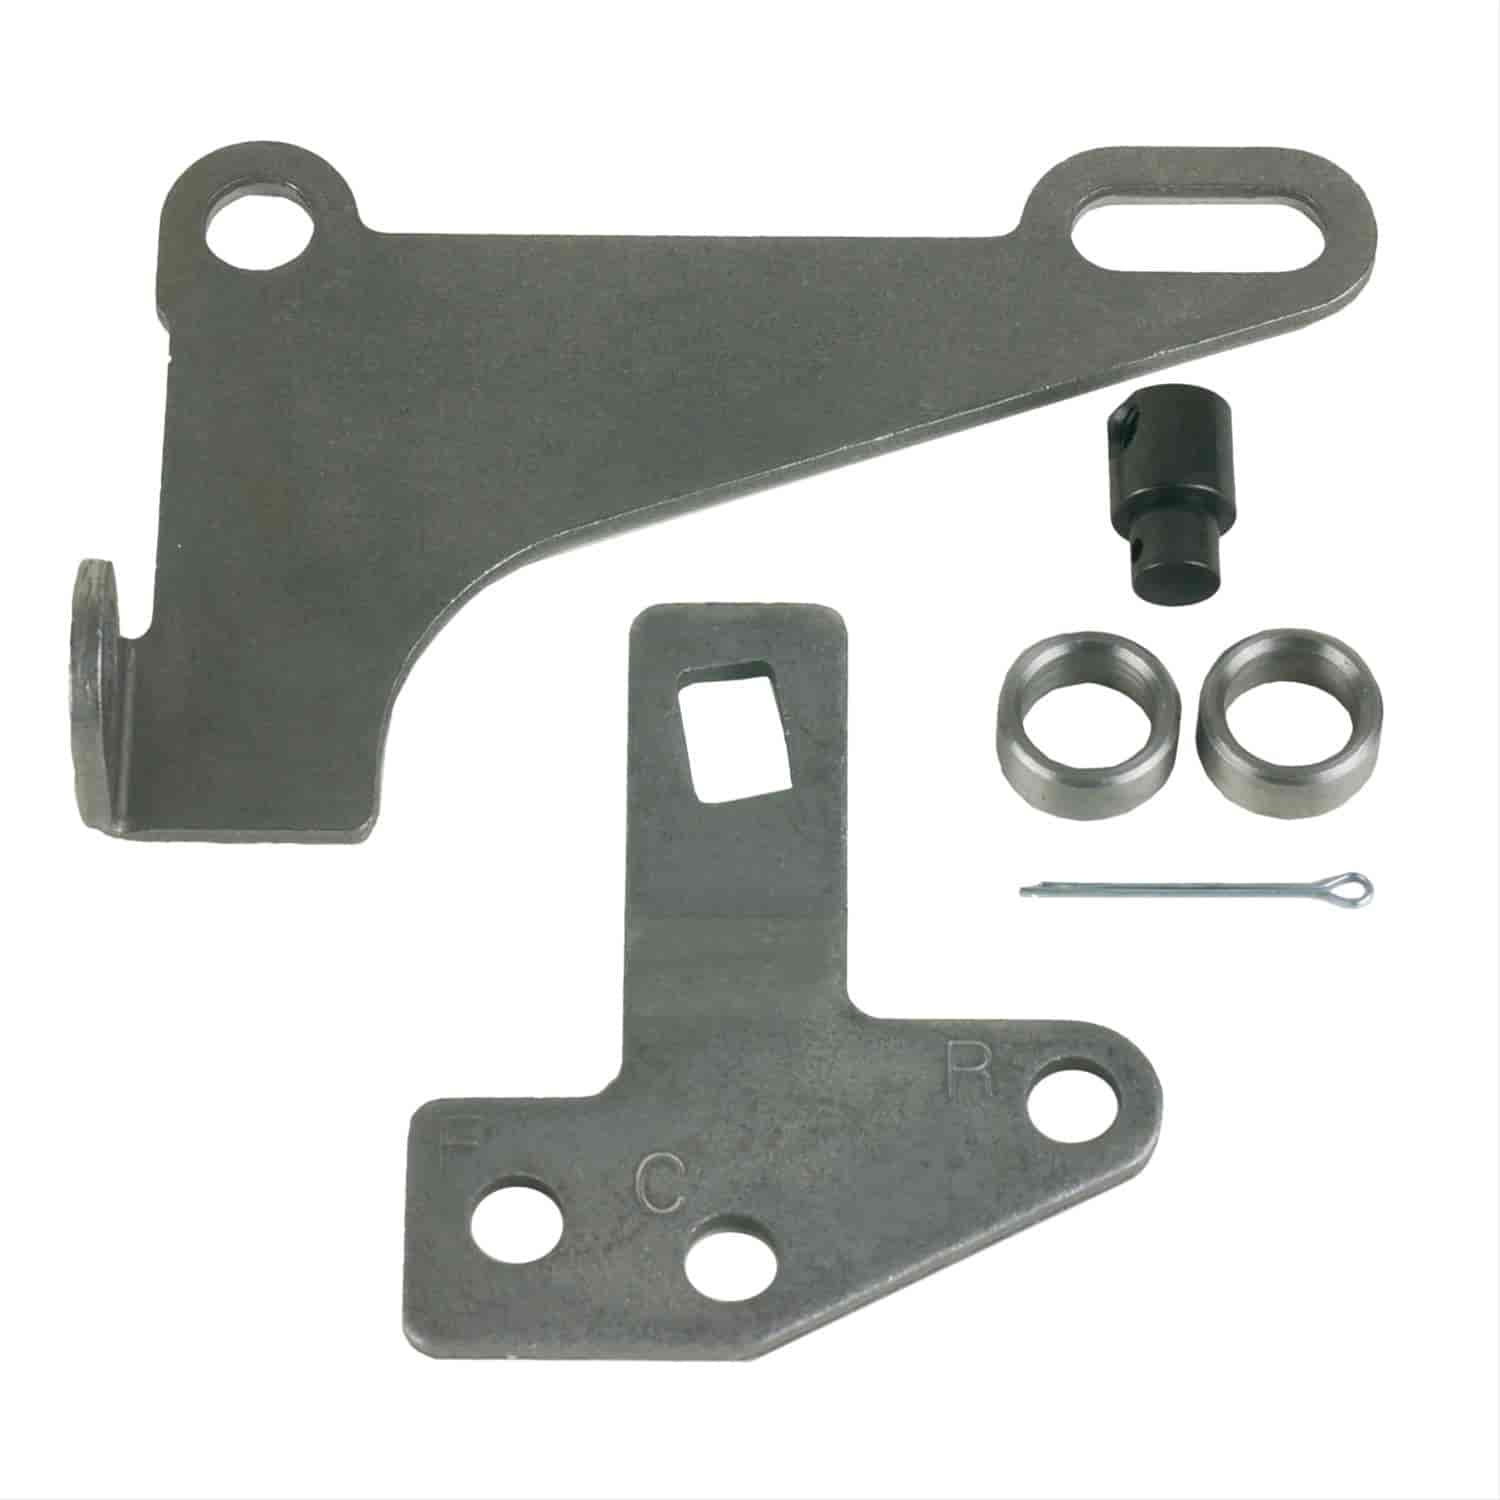 B&M 75498 - B&M Automatic Shifter Brackets and Levers